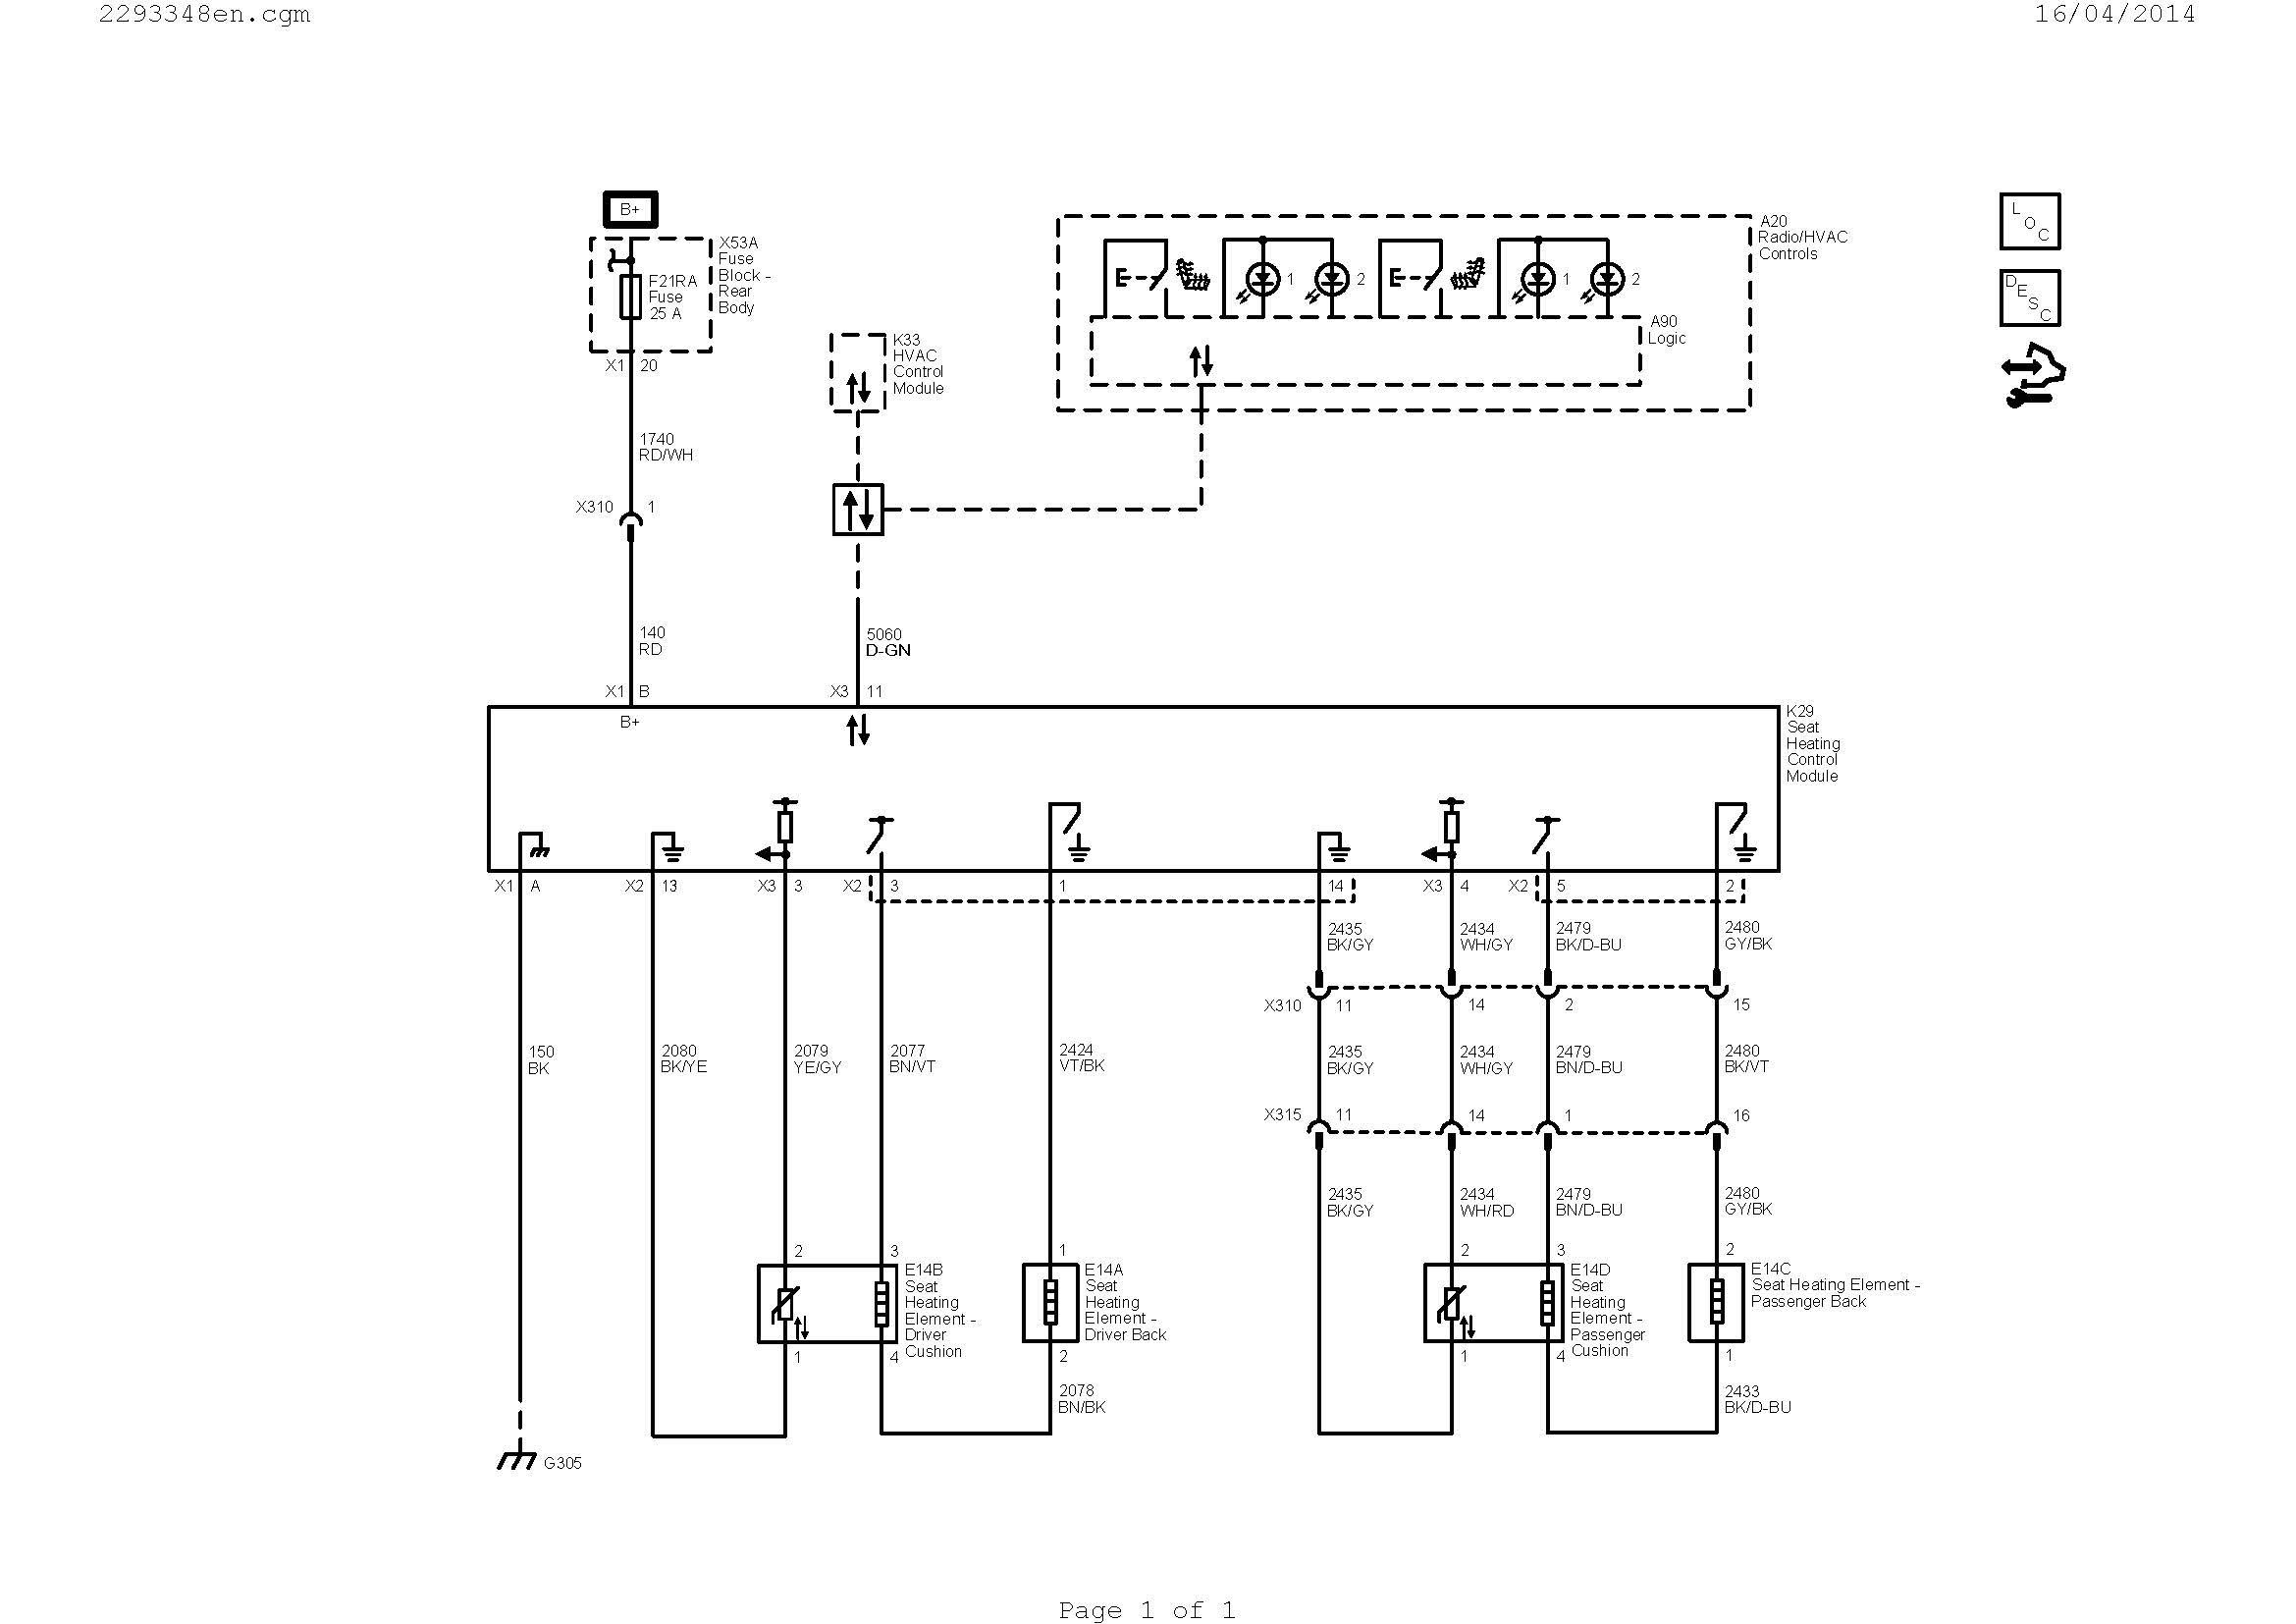 garland master 200 wiring diagram Collection-ac wiring diagram 3-n